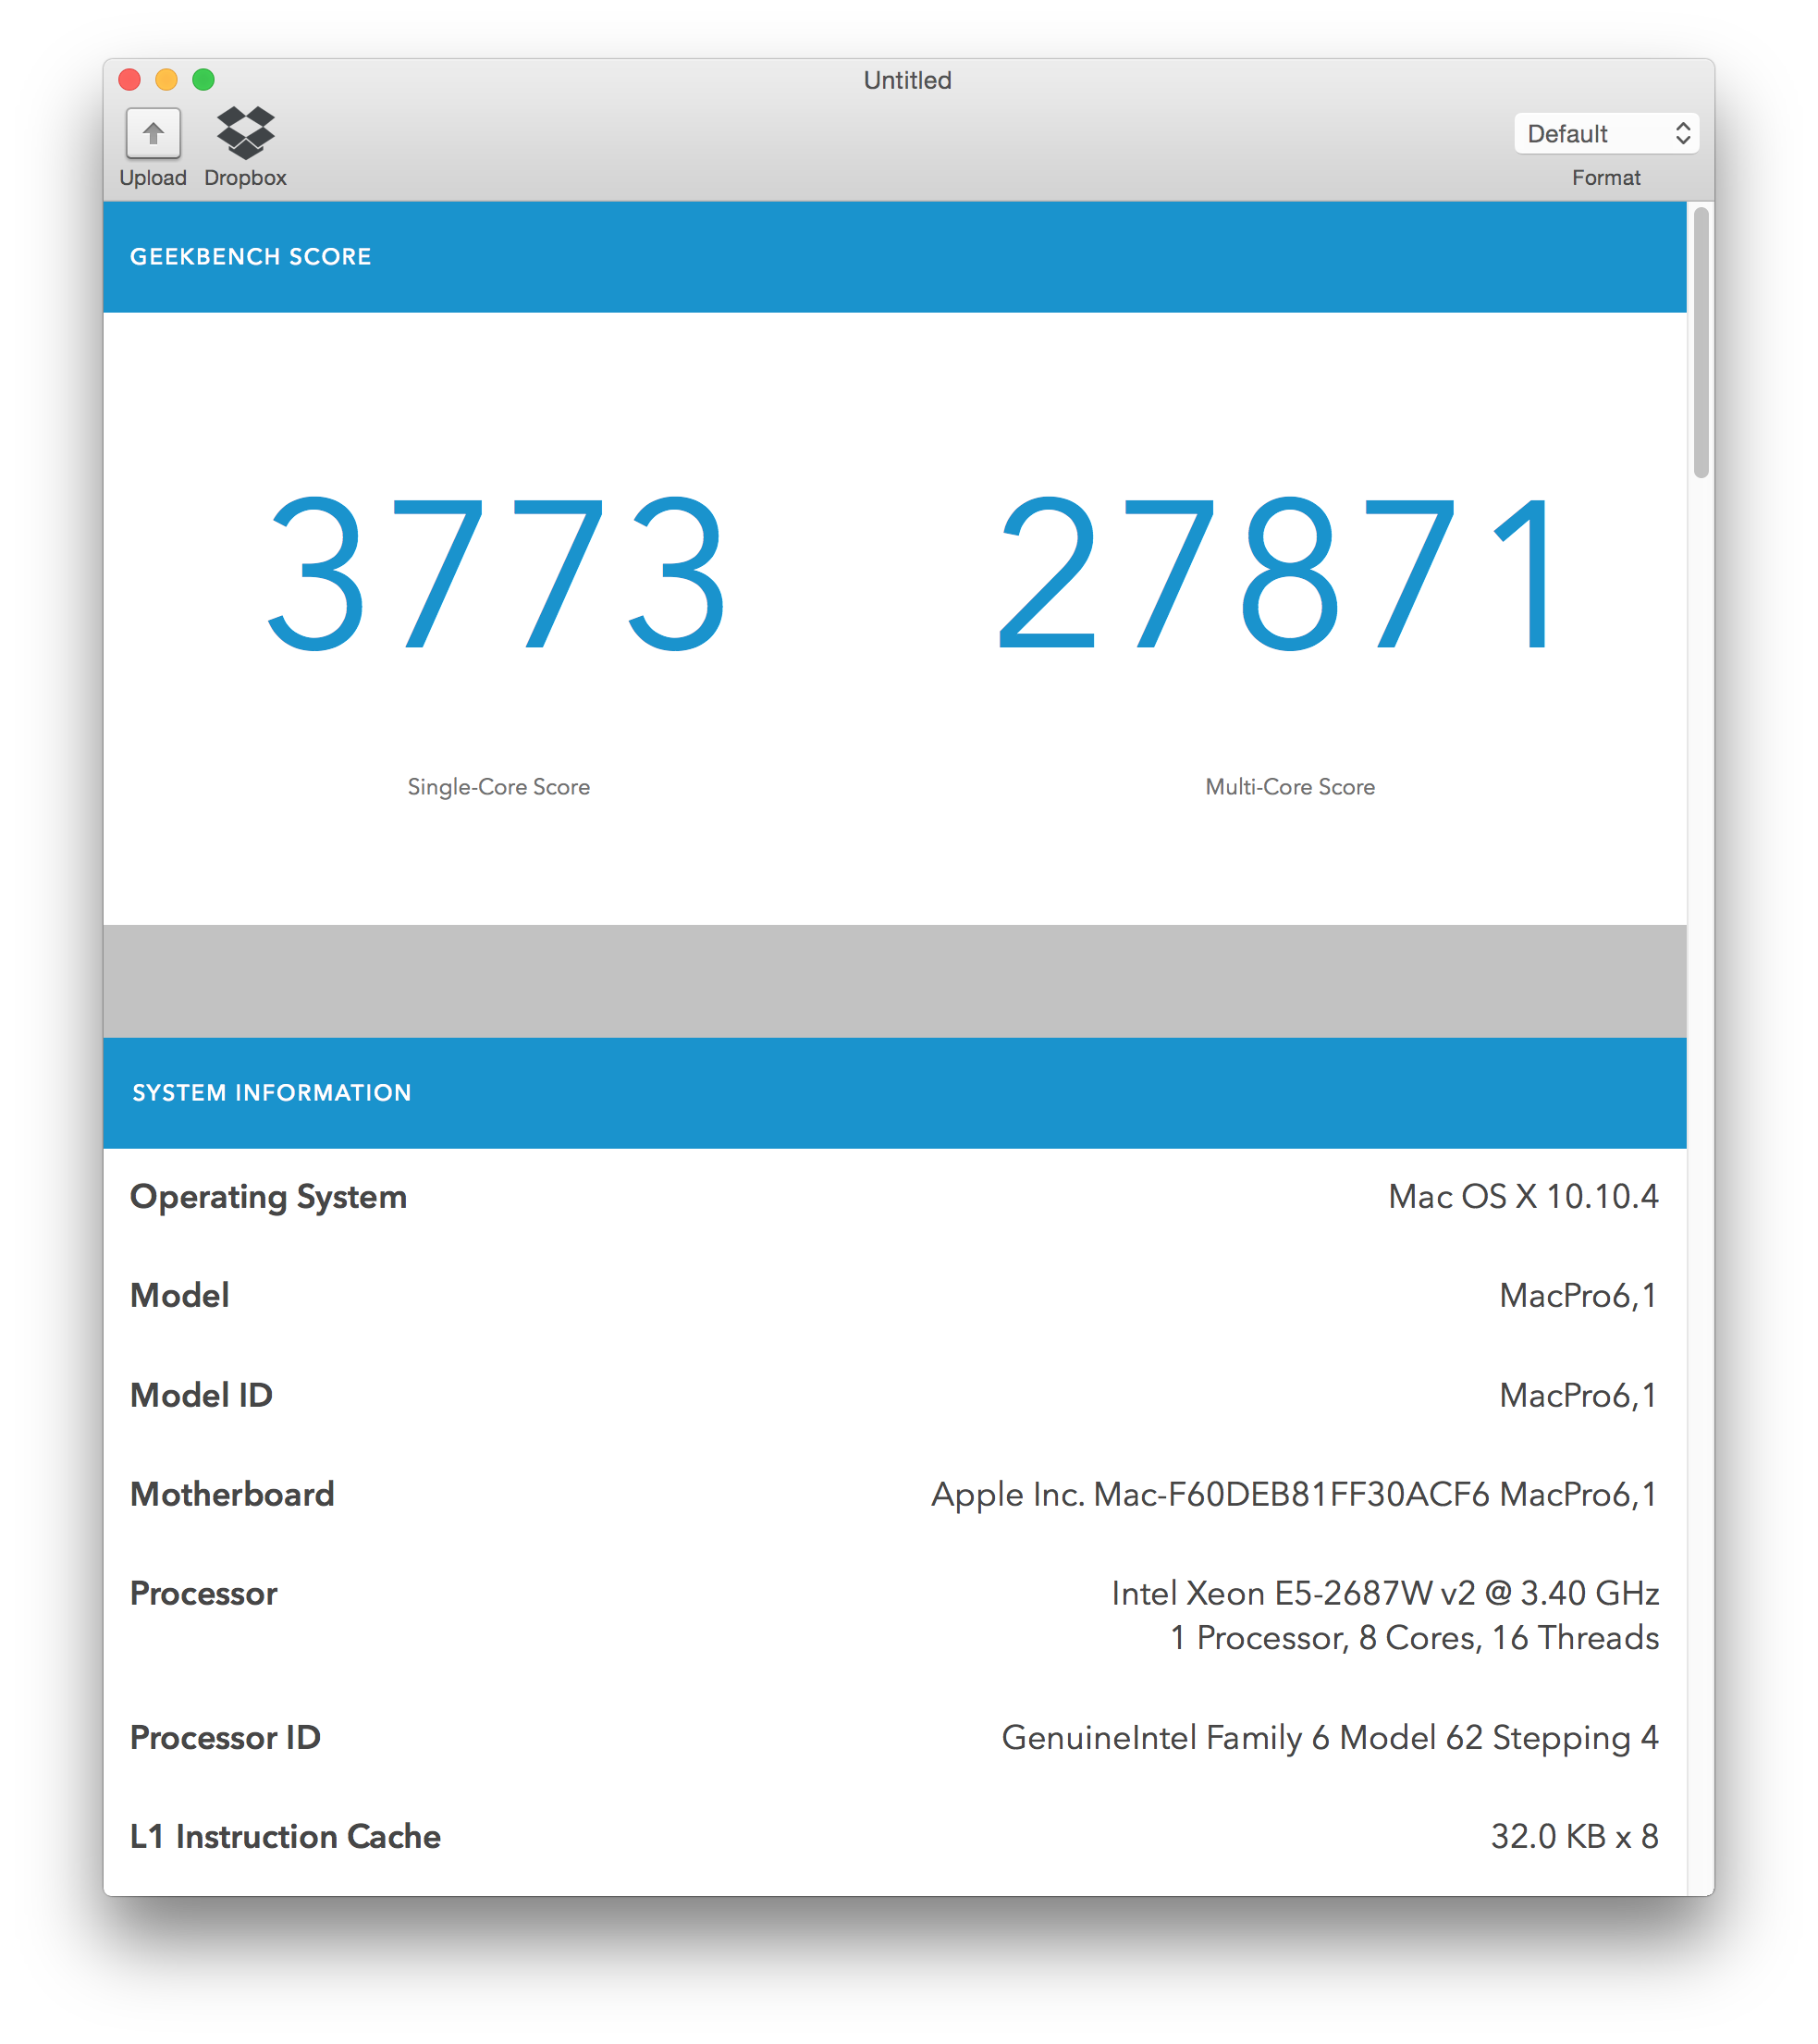 147861-geekbench.png